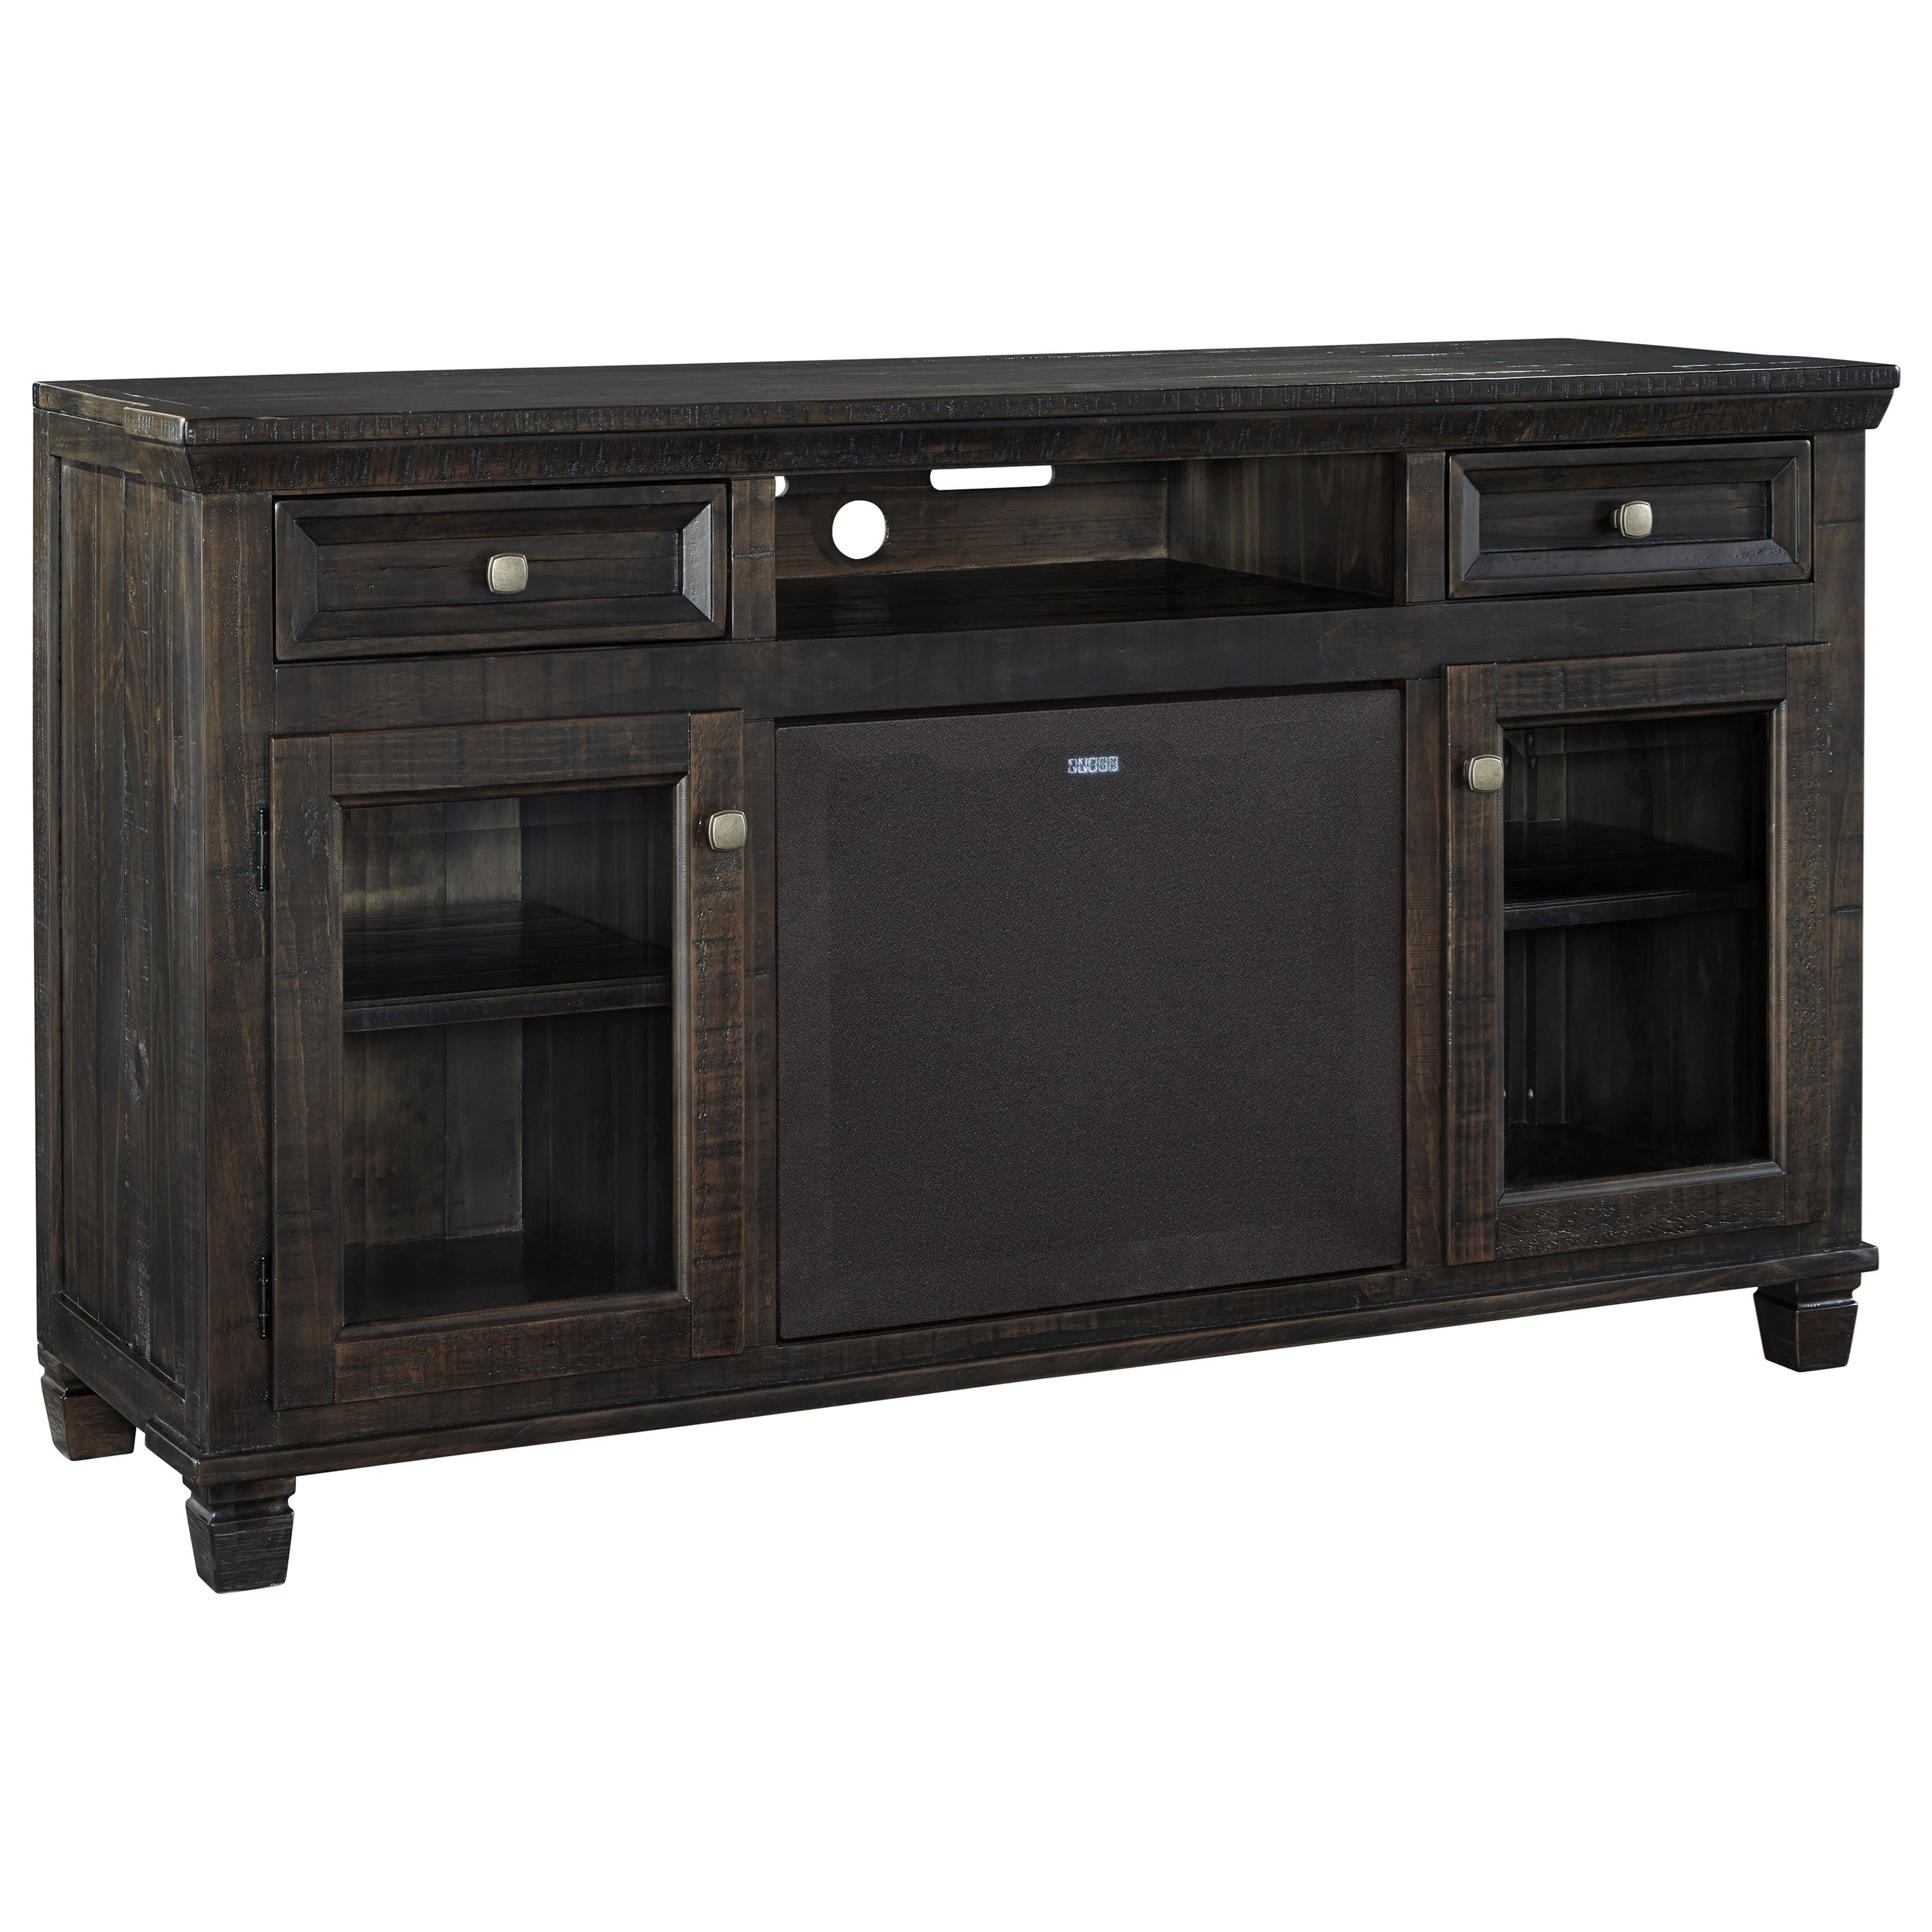 Signature Design by Ashley Townser Large TV Stand w/ Large Bluetooth Speaker - Item Number: W636-30+W100-41